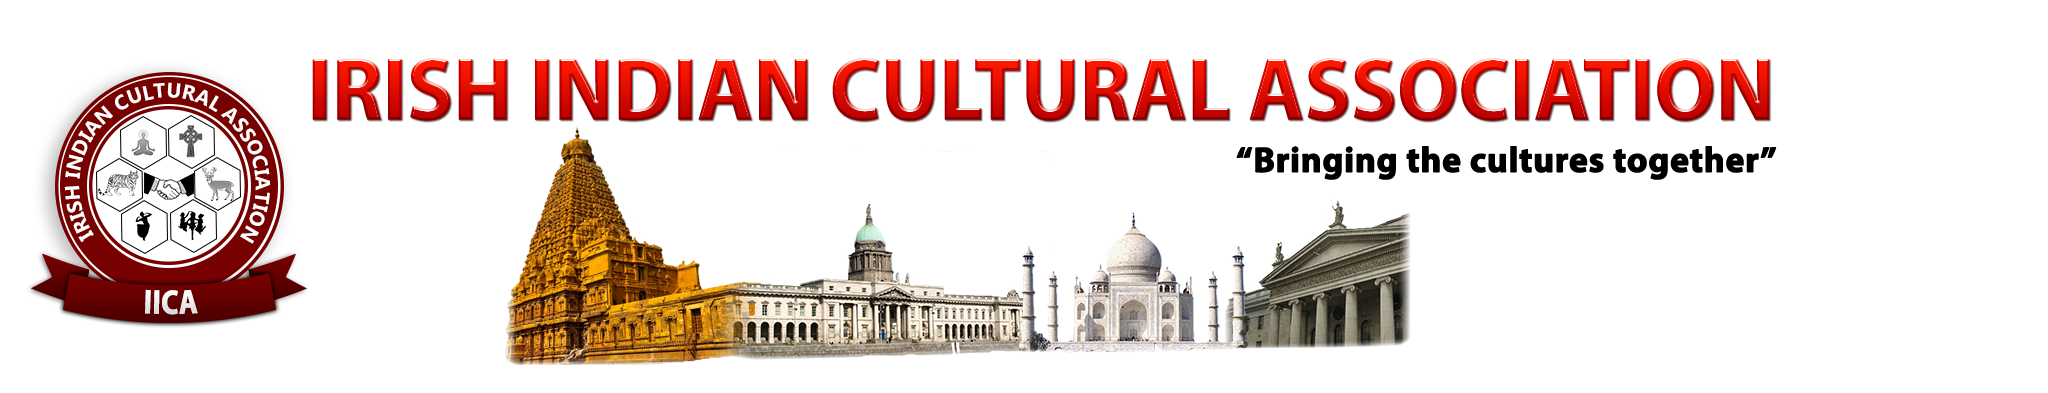 Irish-Indian Cultural Association